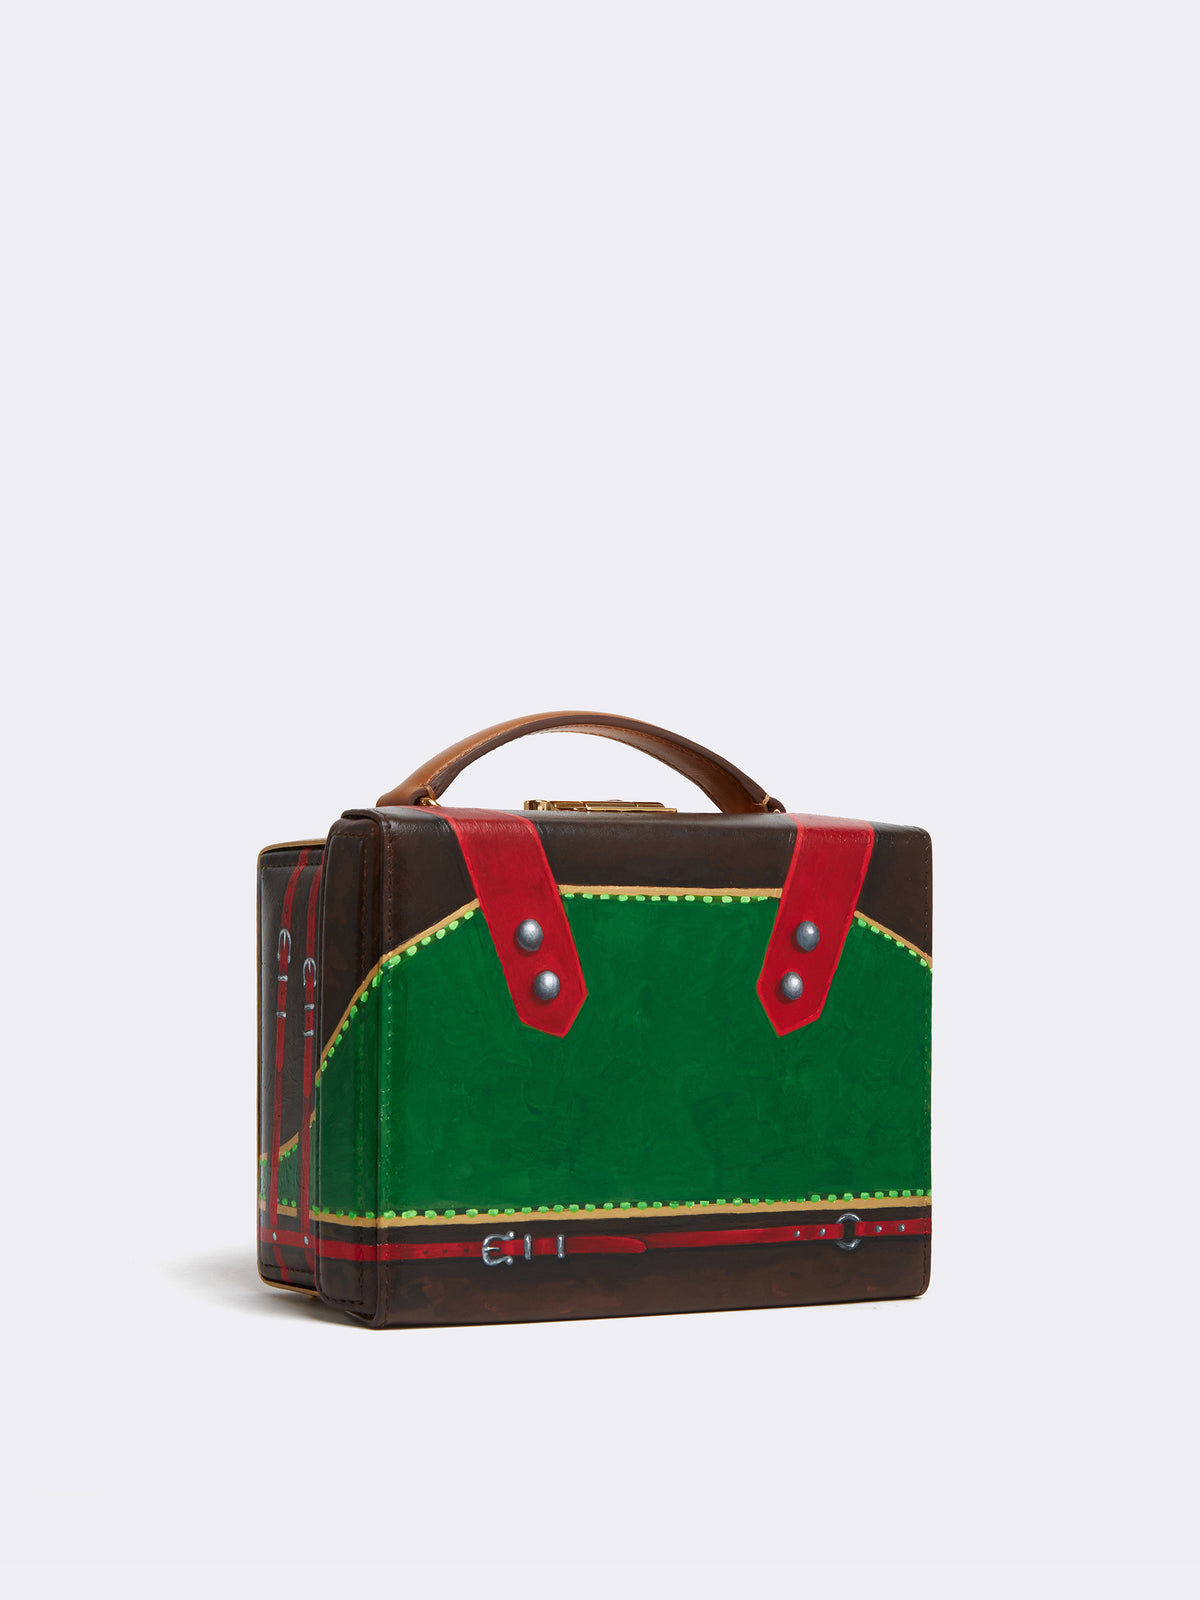 Sophie Matisse x Mark Cross Grace Small Leather Box Bag Smooth Calf Luggage / Red & Green Side